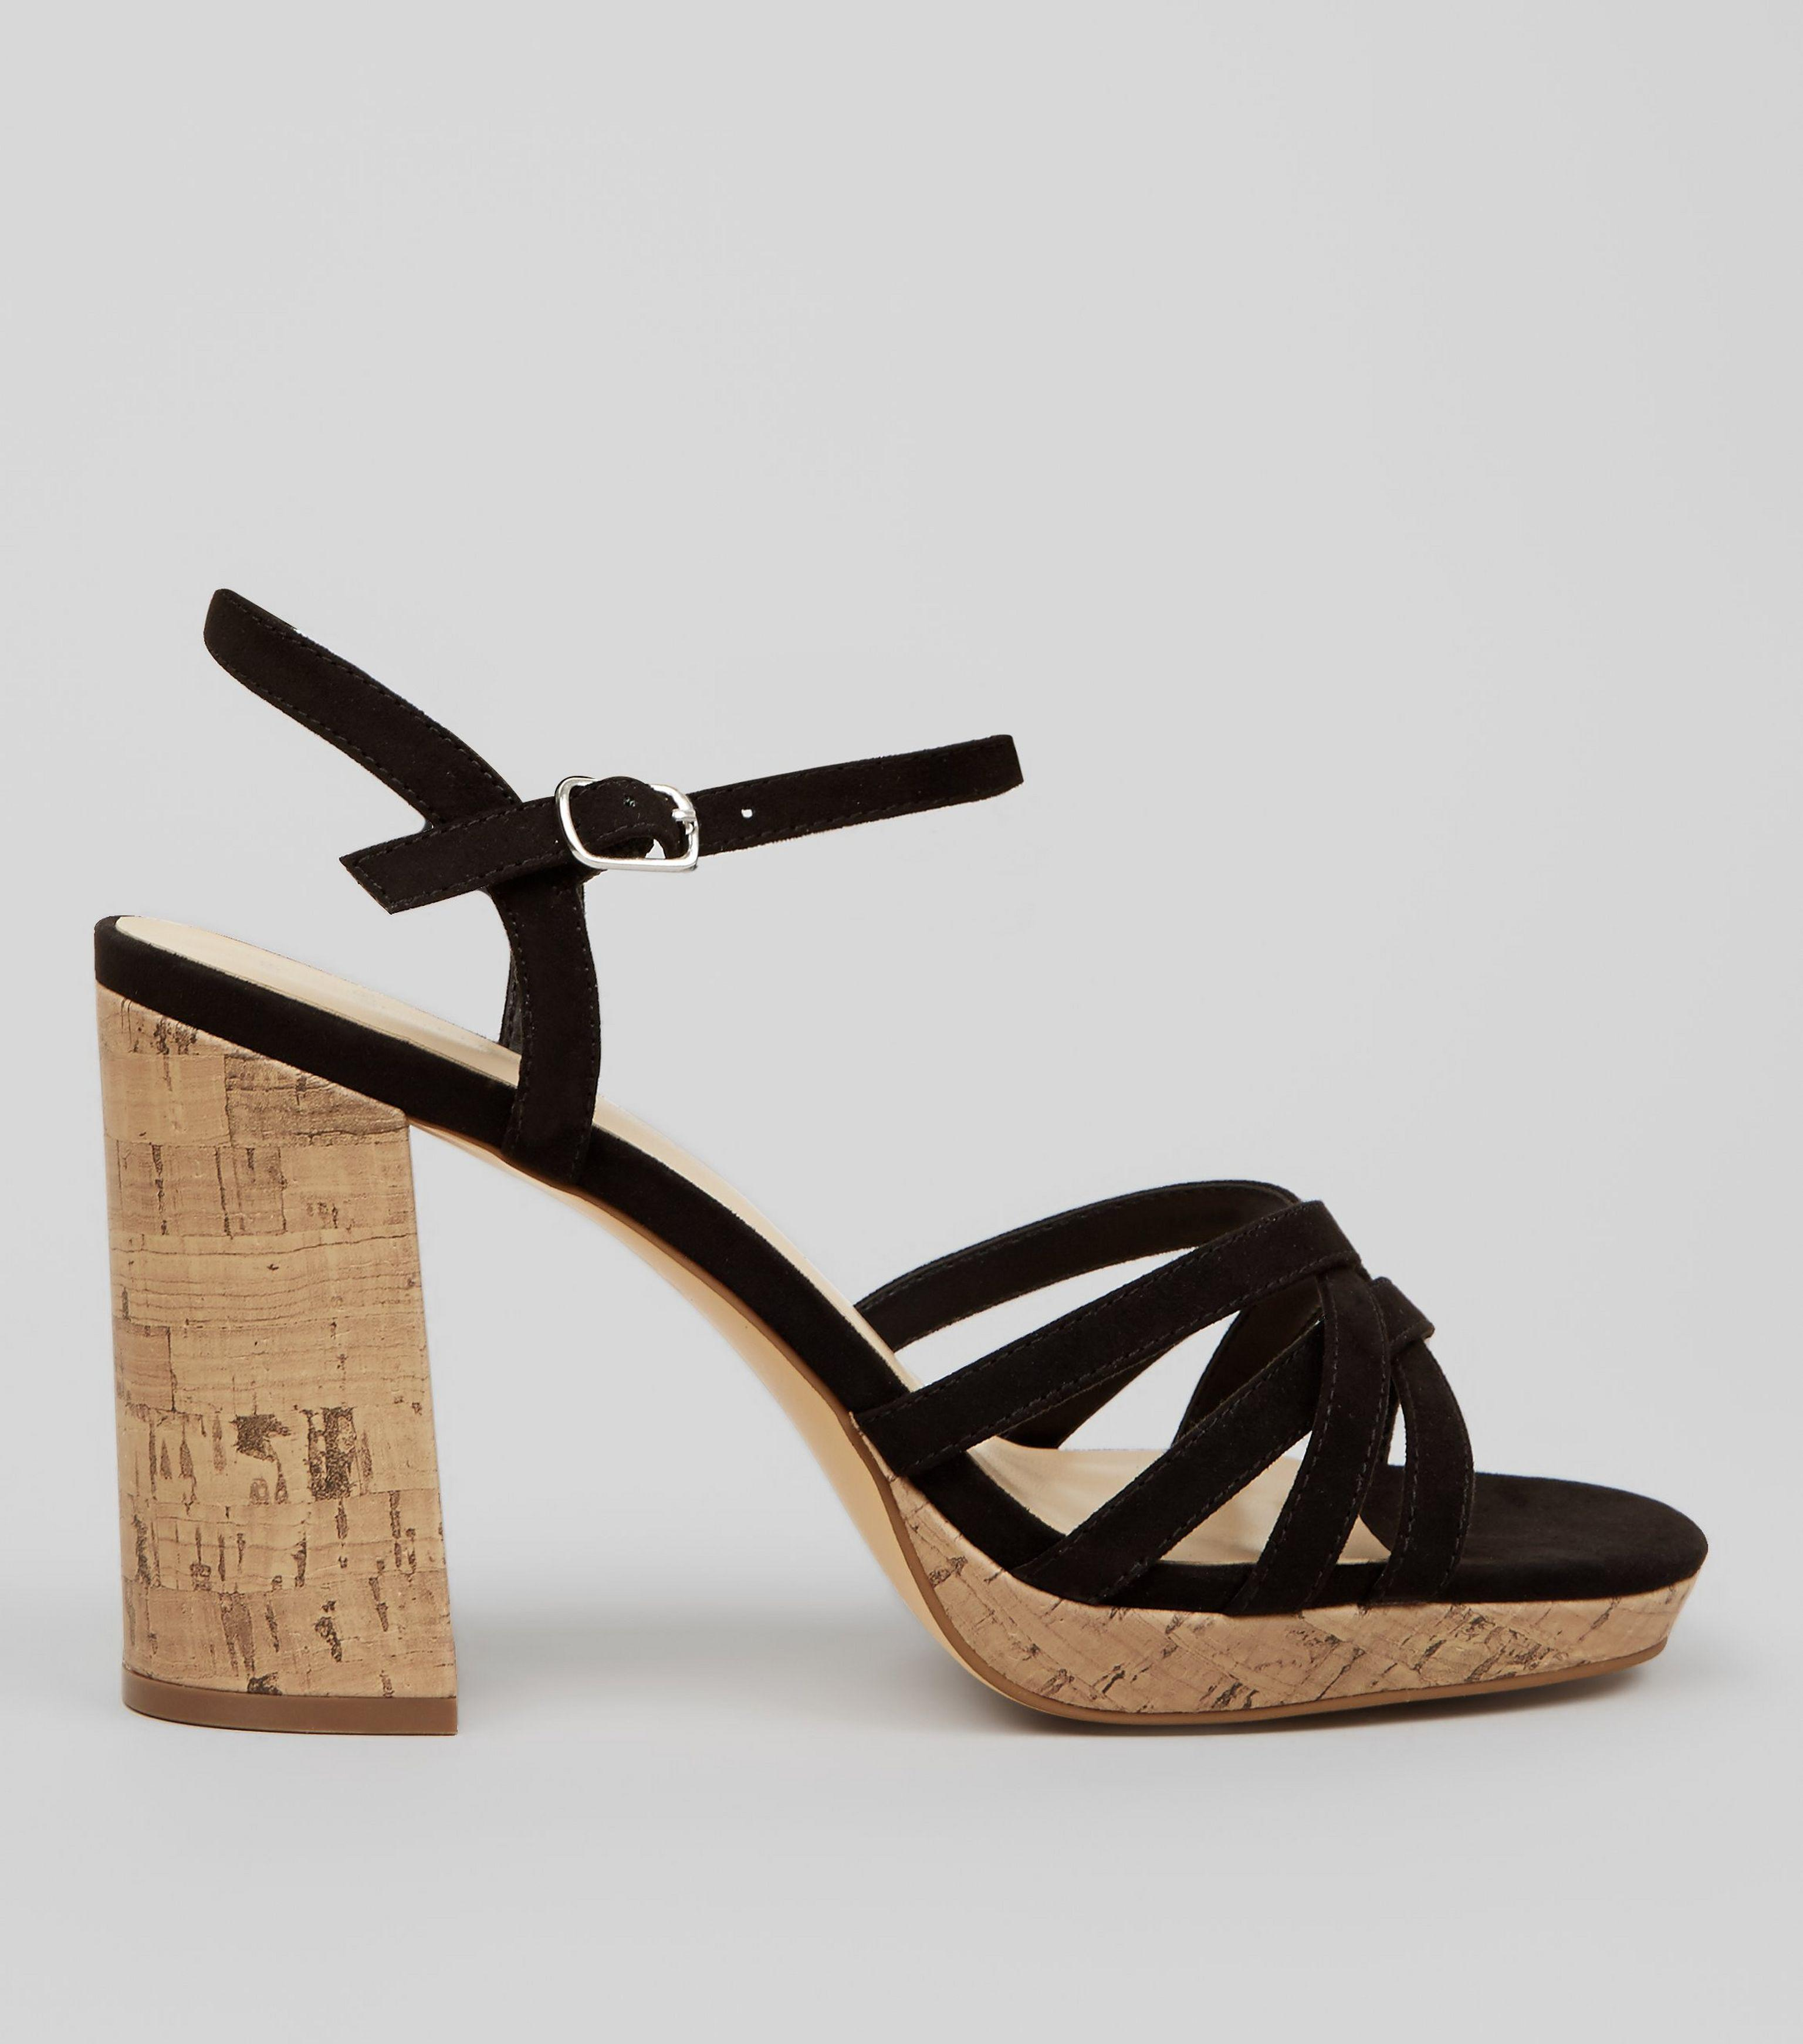 cbc888cd151 New Look Wide Fit Black Suedette Cork Strappy Sandals in Black - Lyst